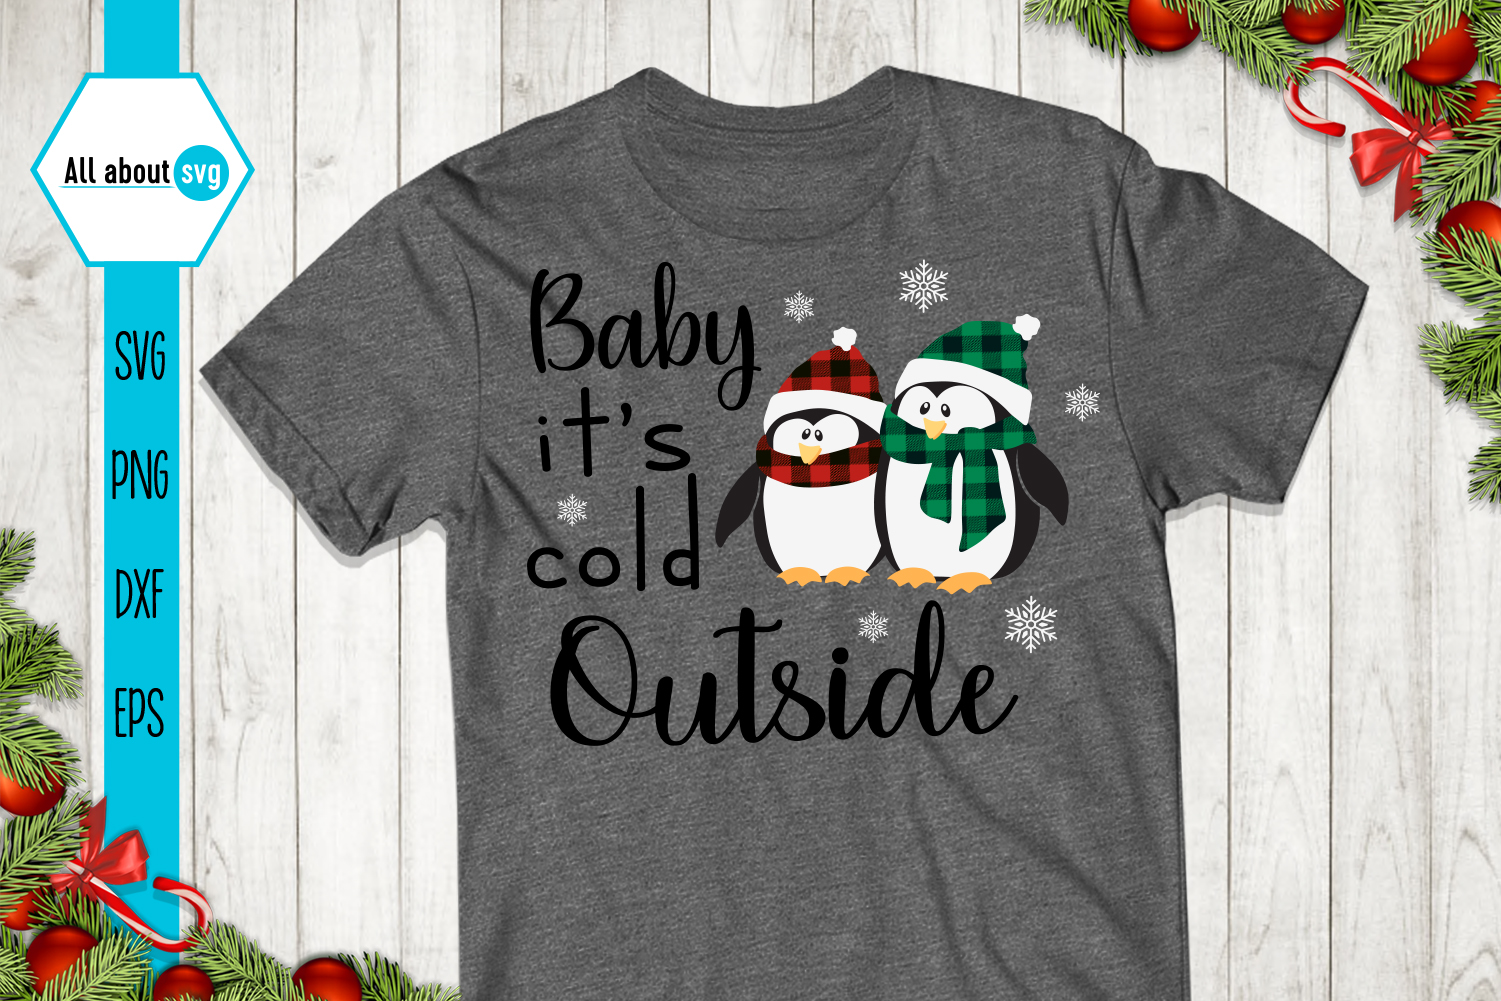 Baby it's cold outside SVG example image 3